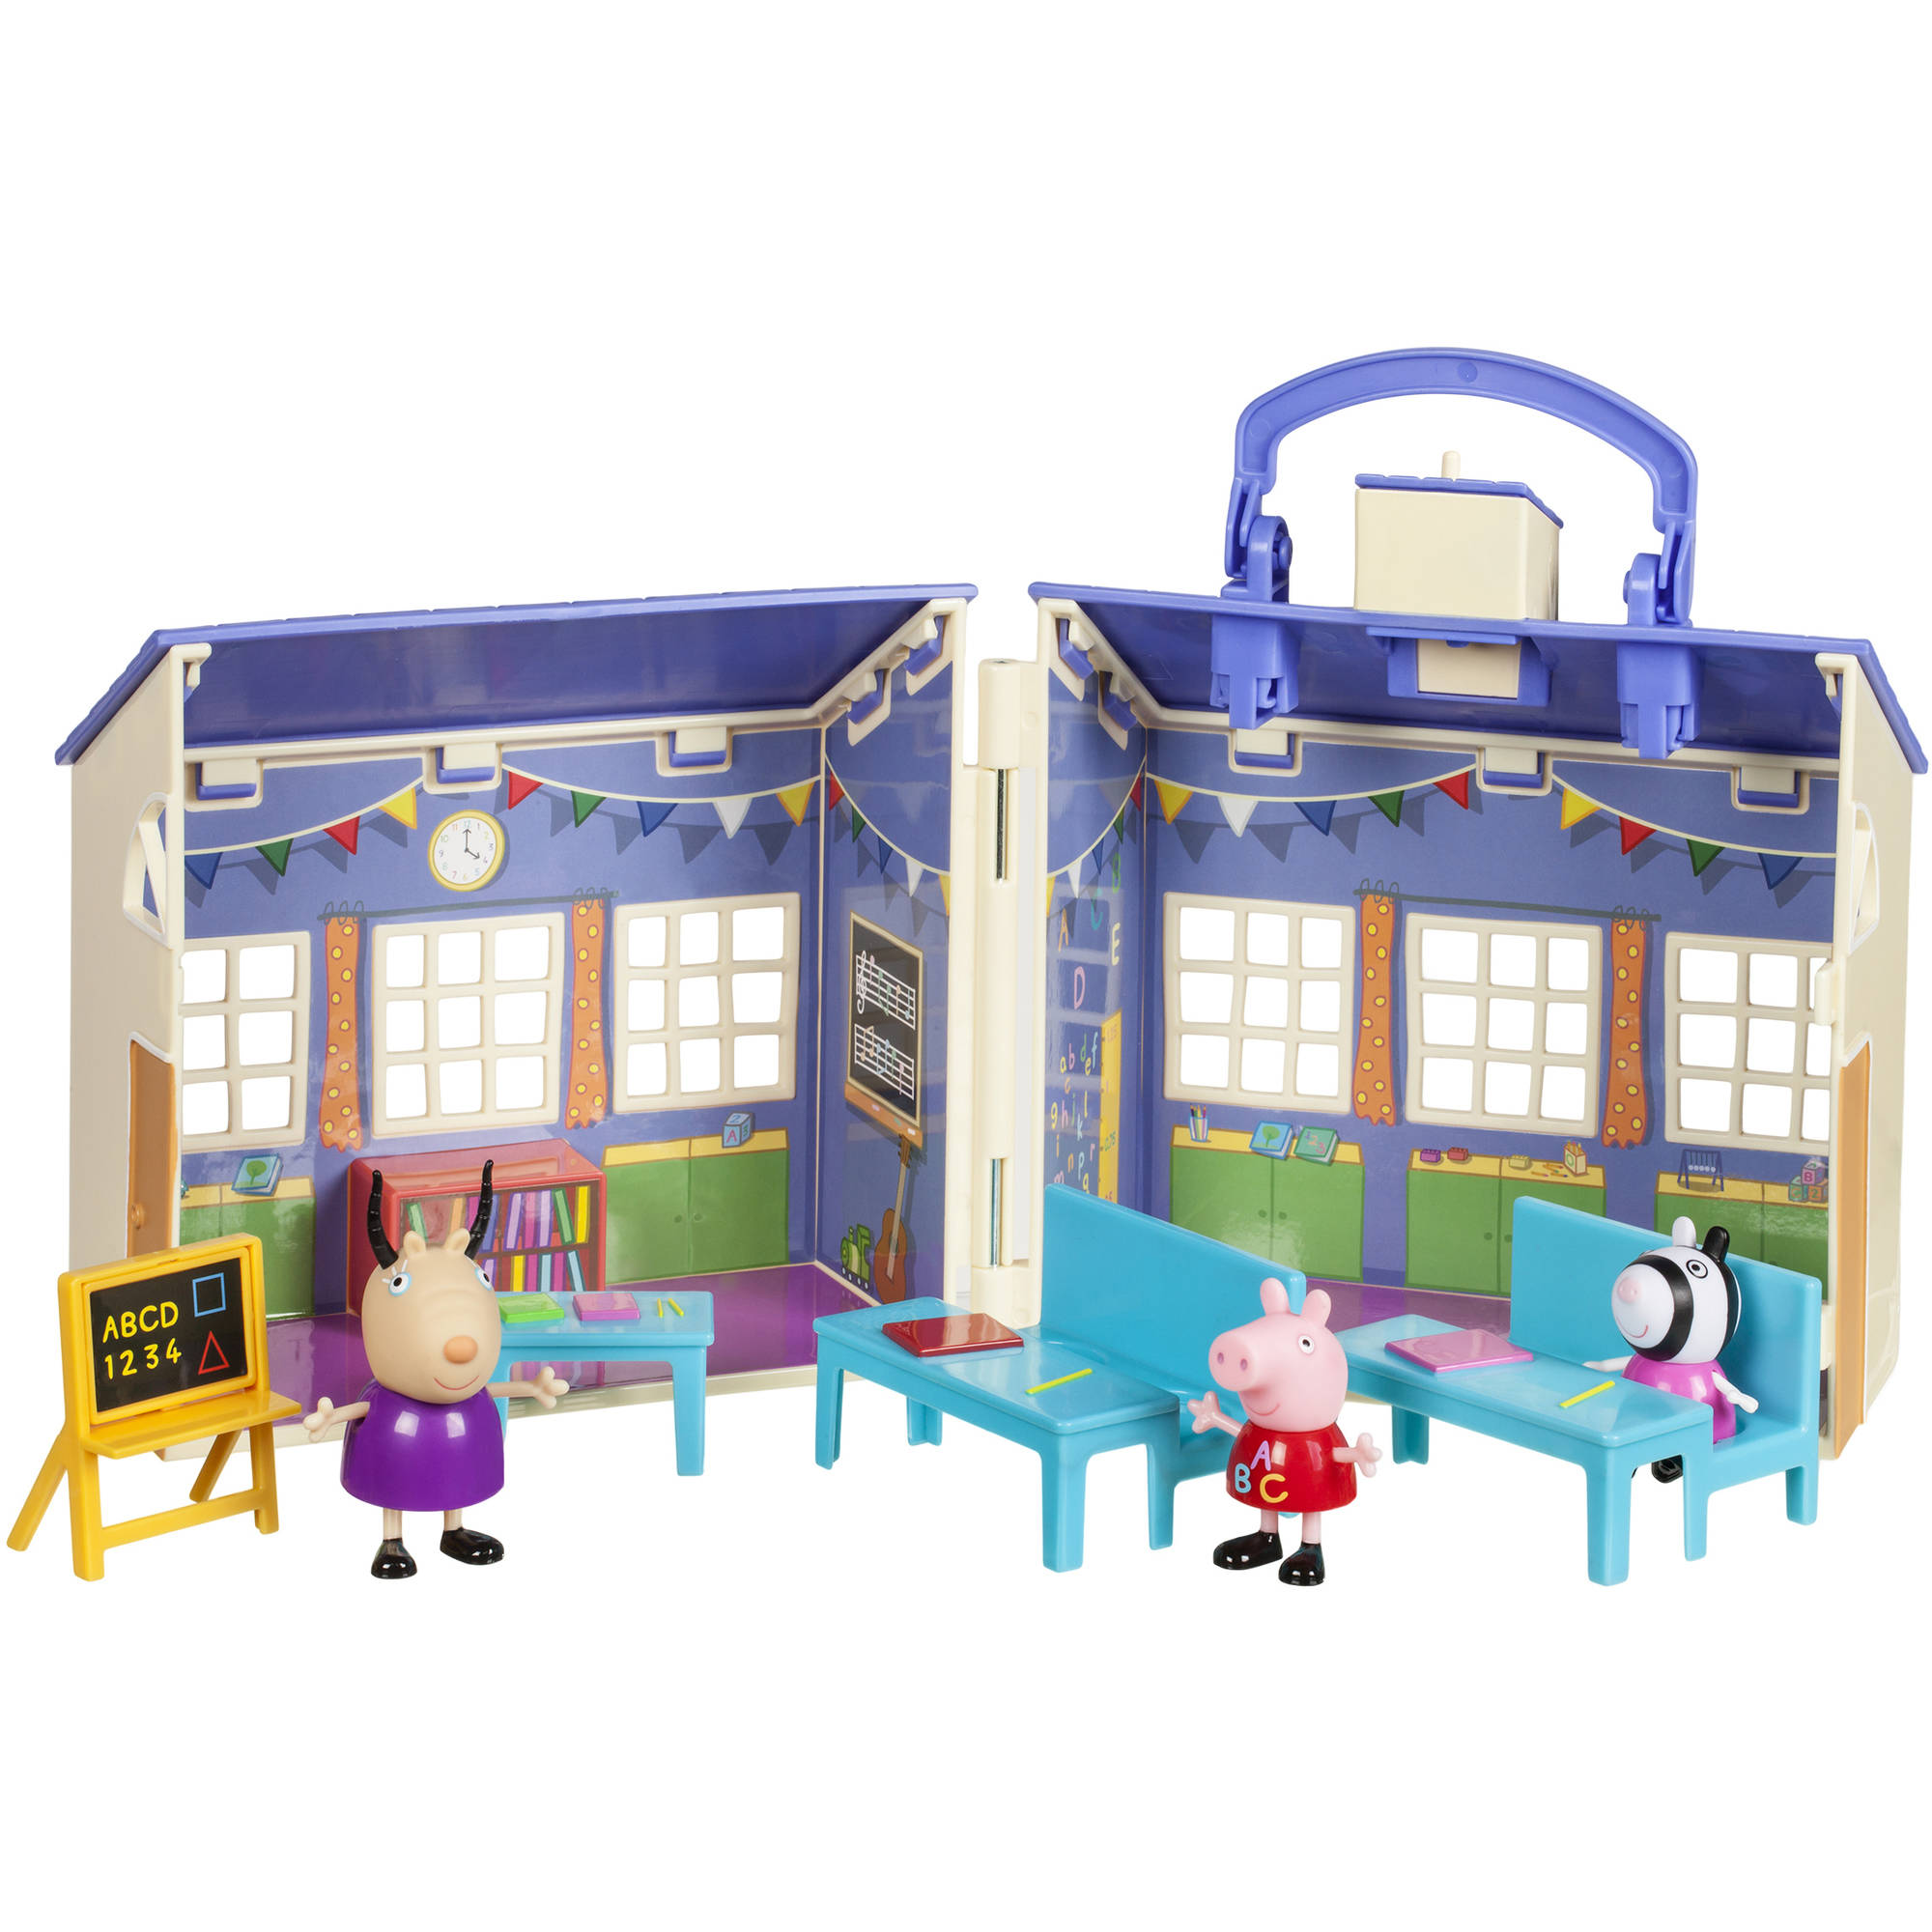 Peppa Pig Peppa's School Playset